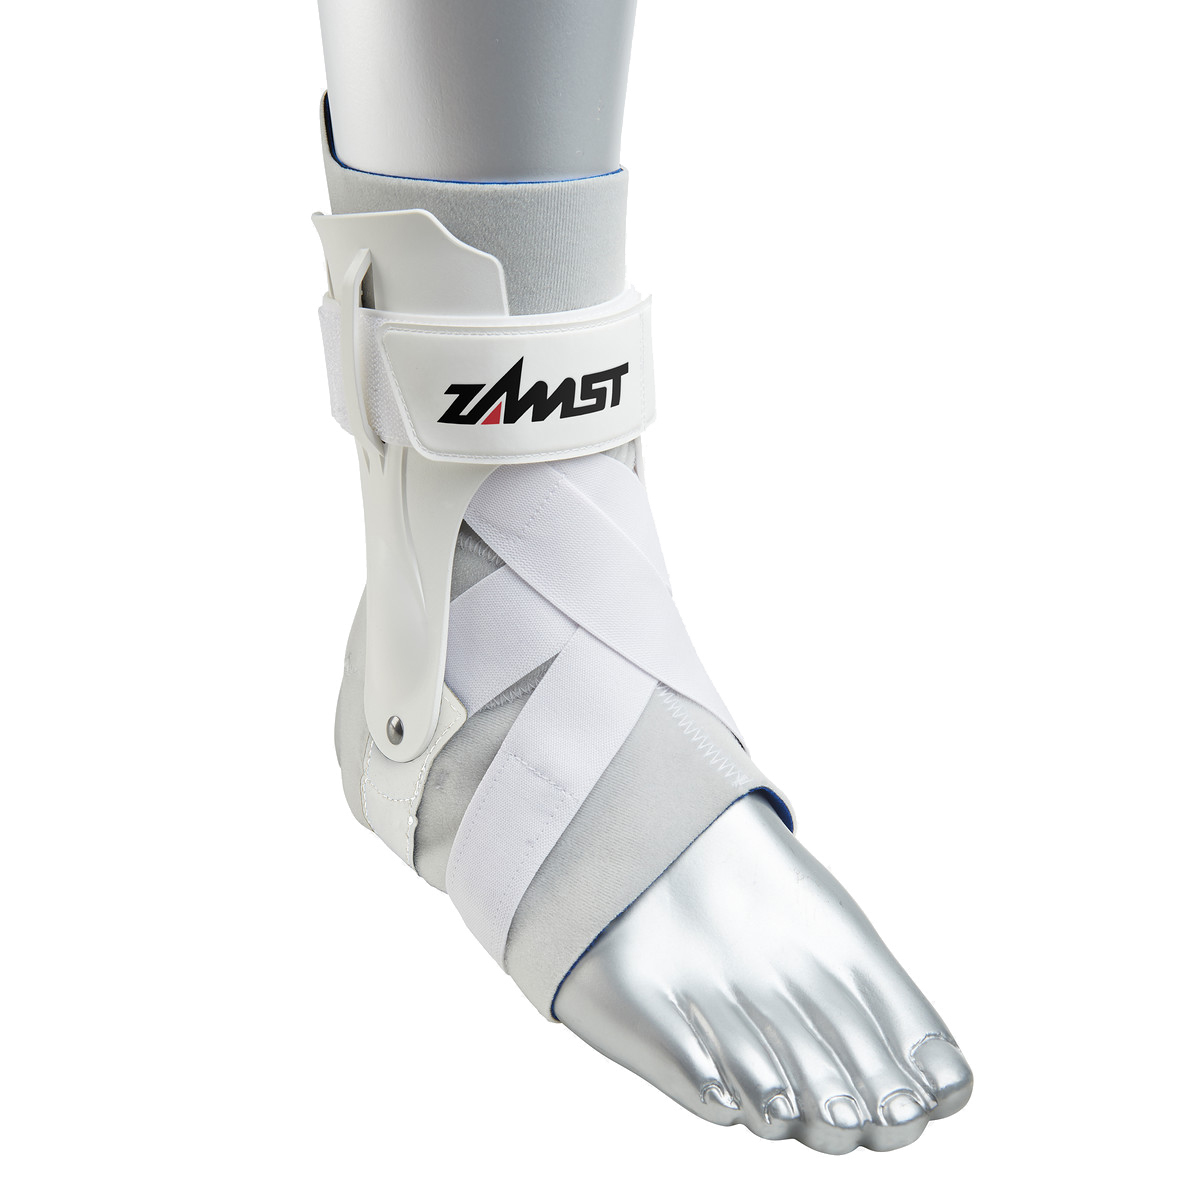 Zamst A2-DX Enkelbrace - Wit - Links - L